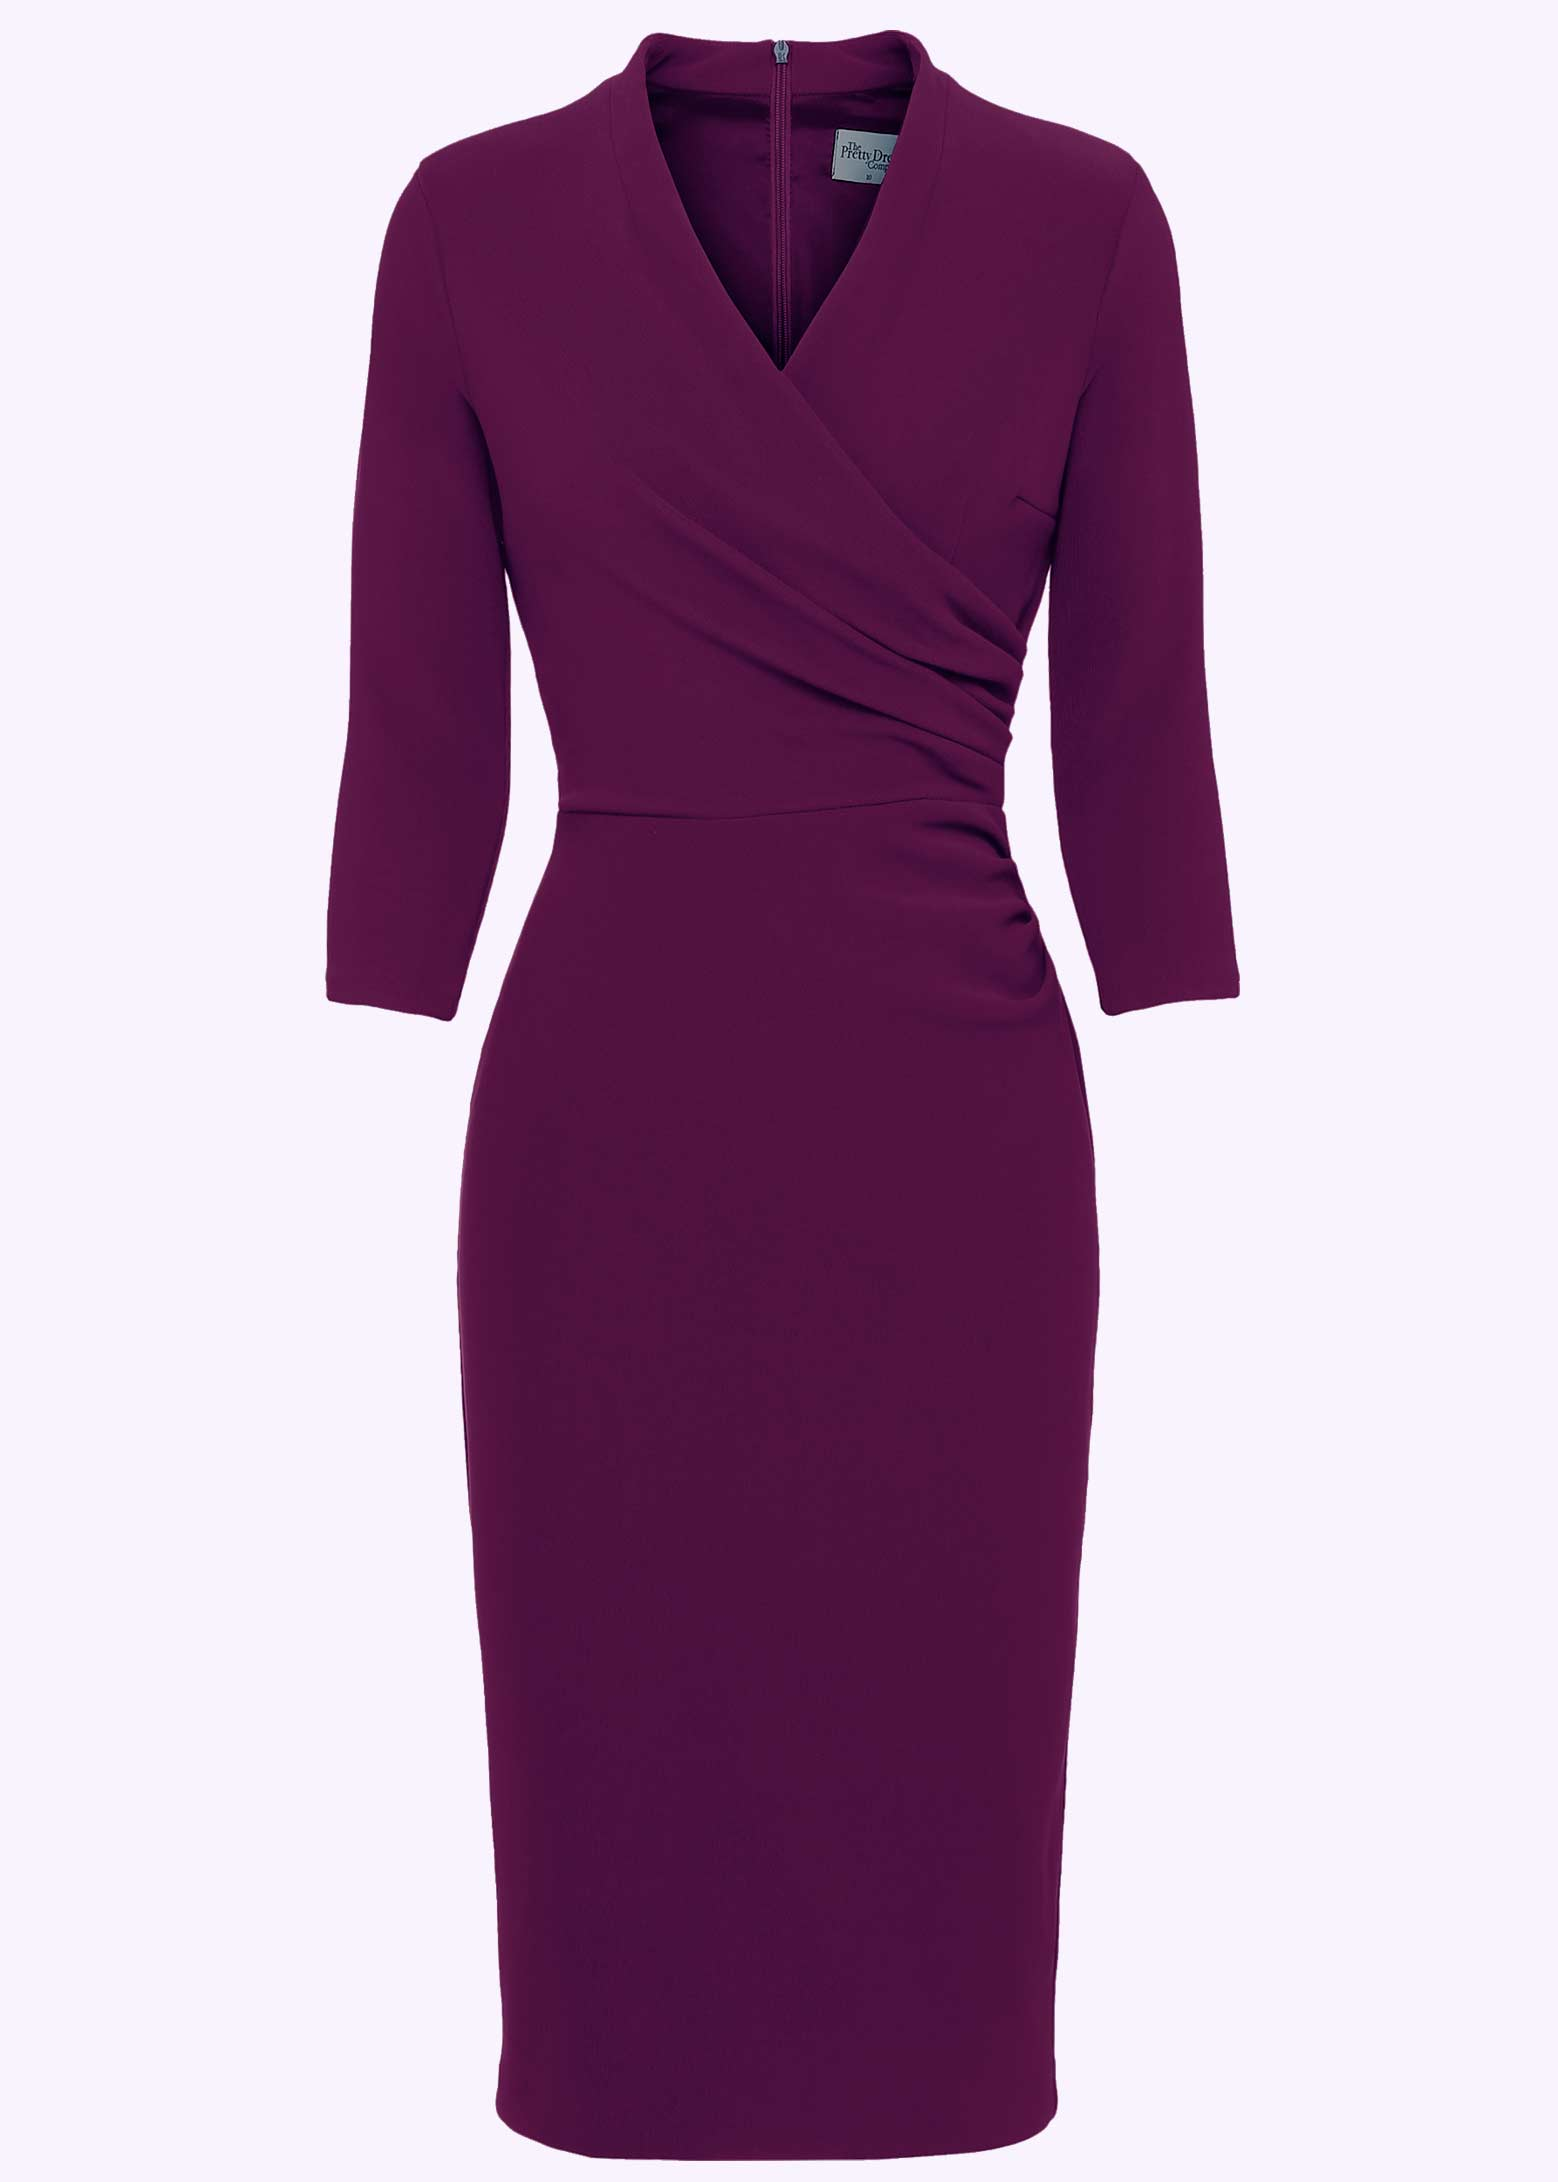 The flattering pencil dress in vintage style